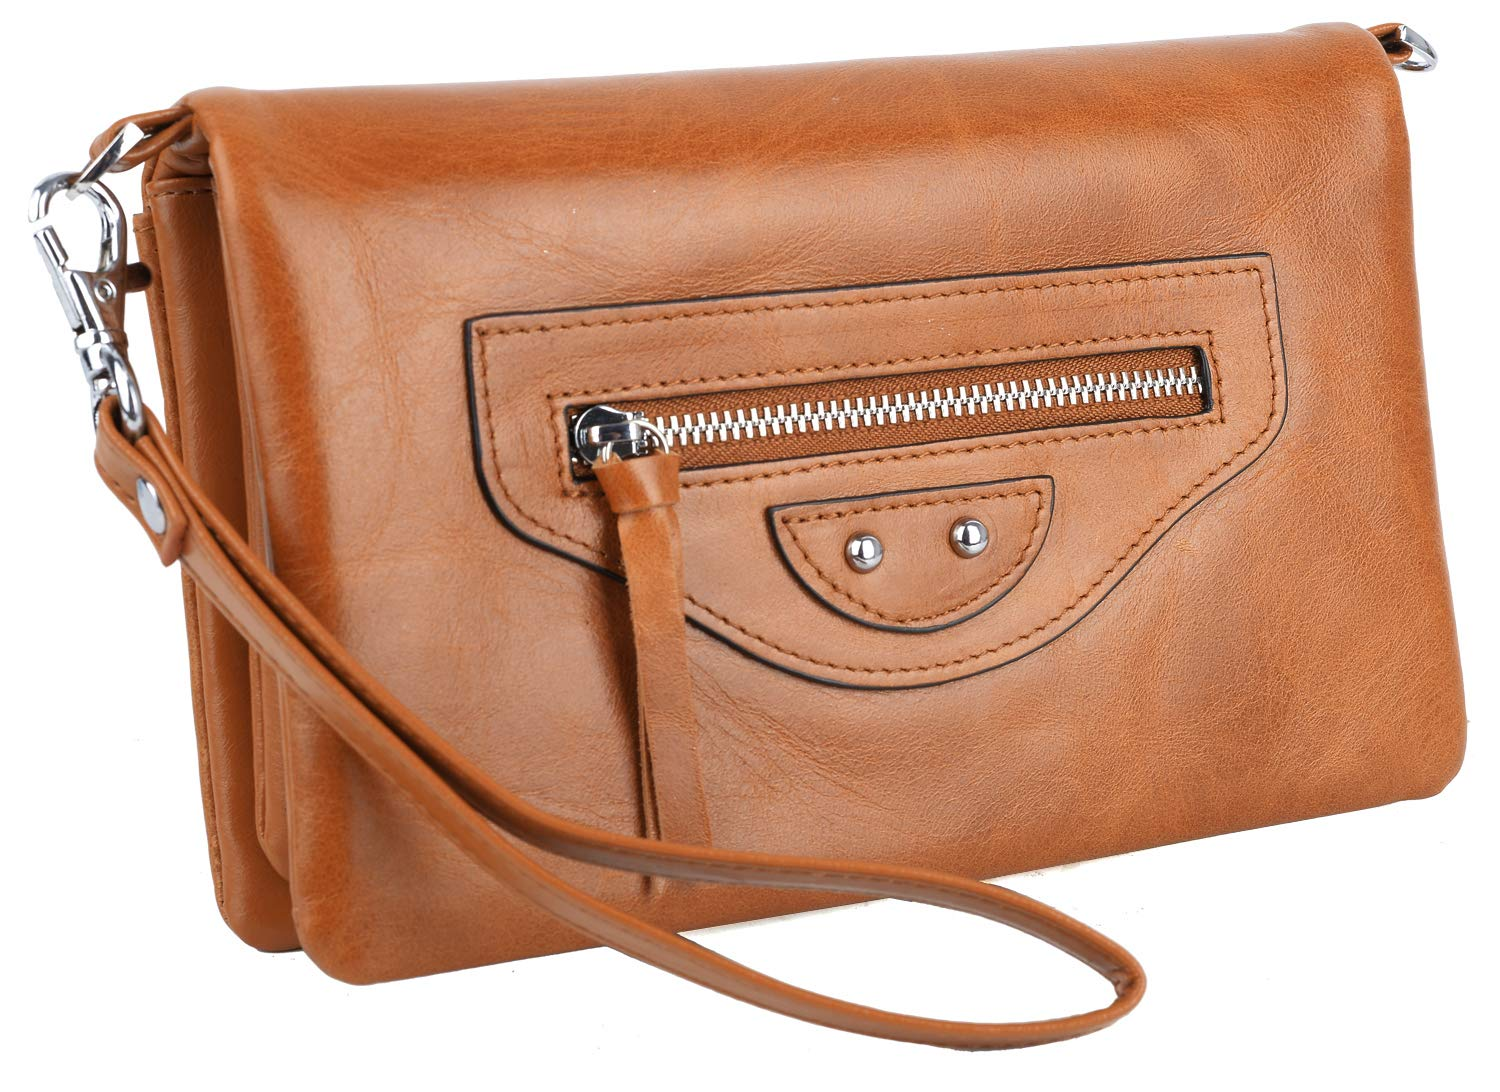 YALUXE Women's RFID Blocking Multiple Pocket Large Capacity Wristlet Wallet with Shoulder Strap Brown